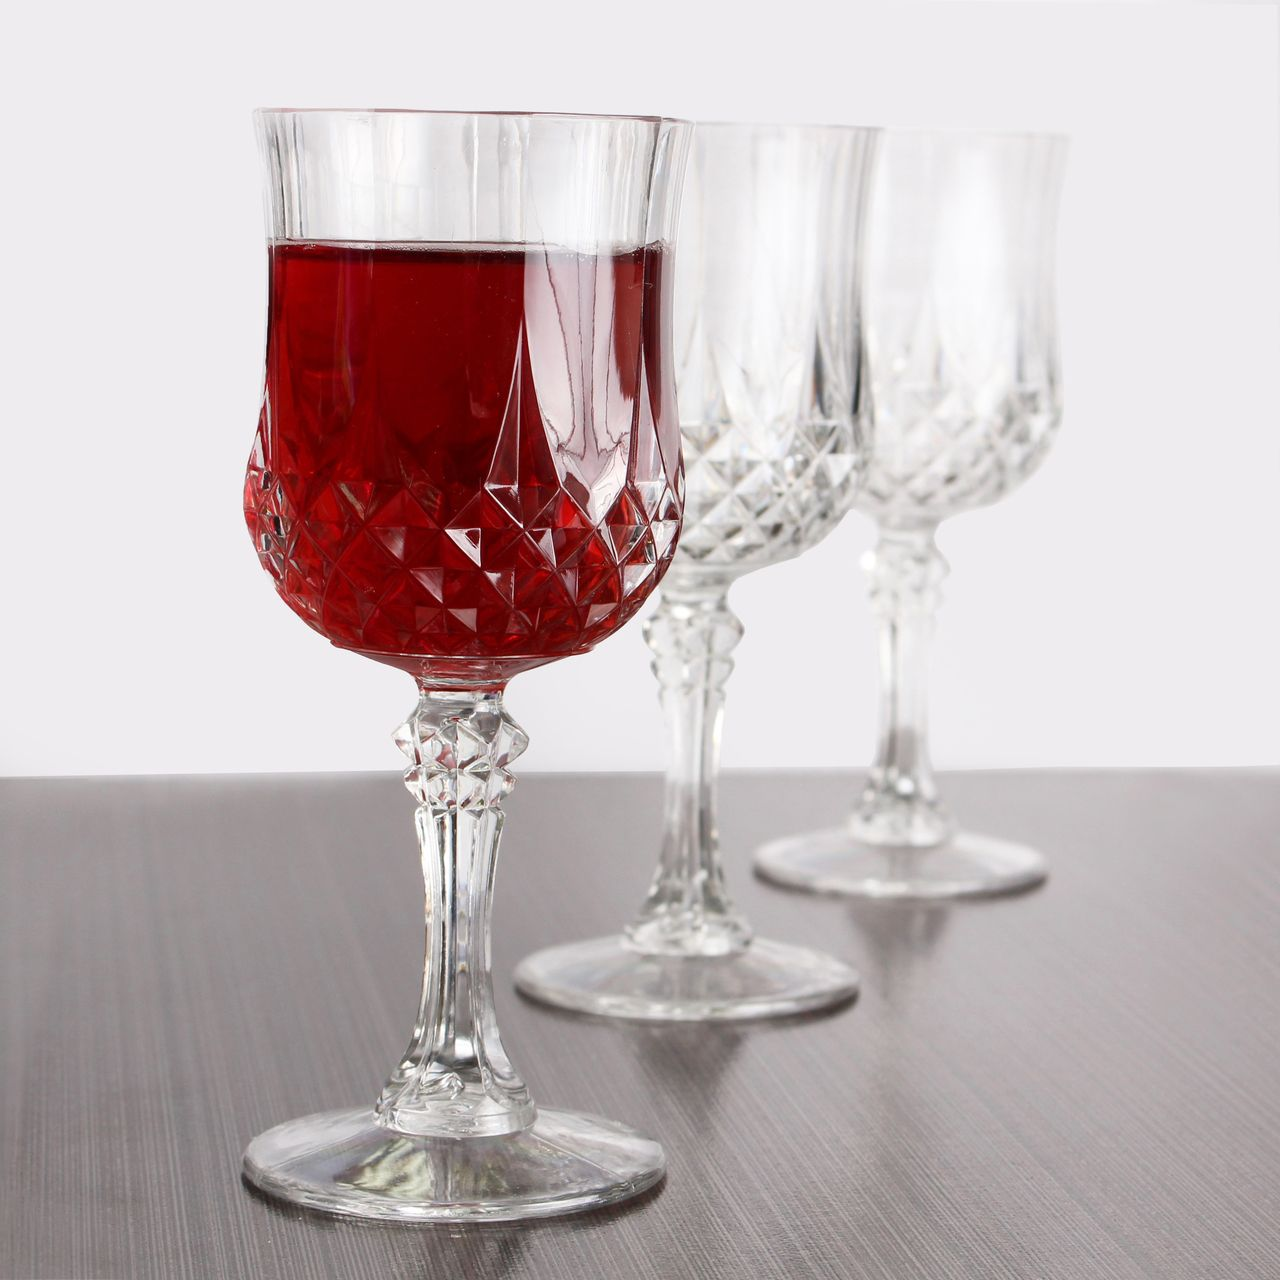 3f6f033a91c Posh Party Supplies - Elegant Crystal-Like Plastic 8 oz Wine Glasses